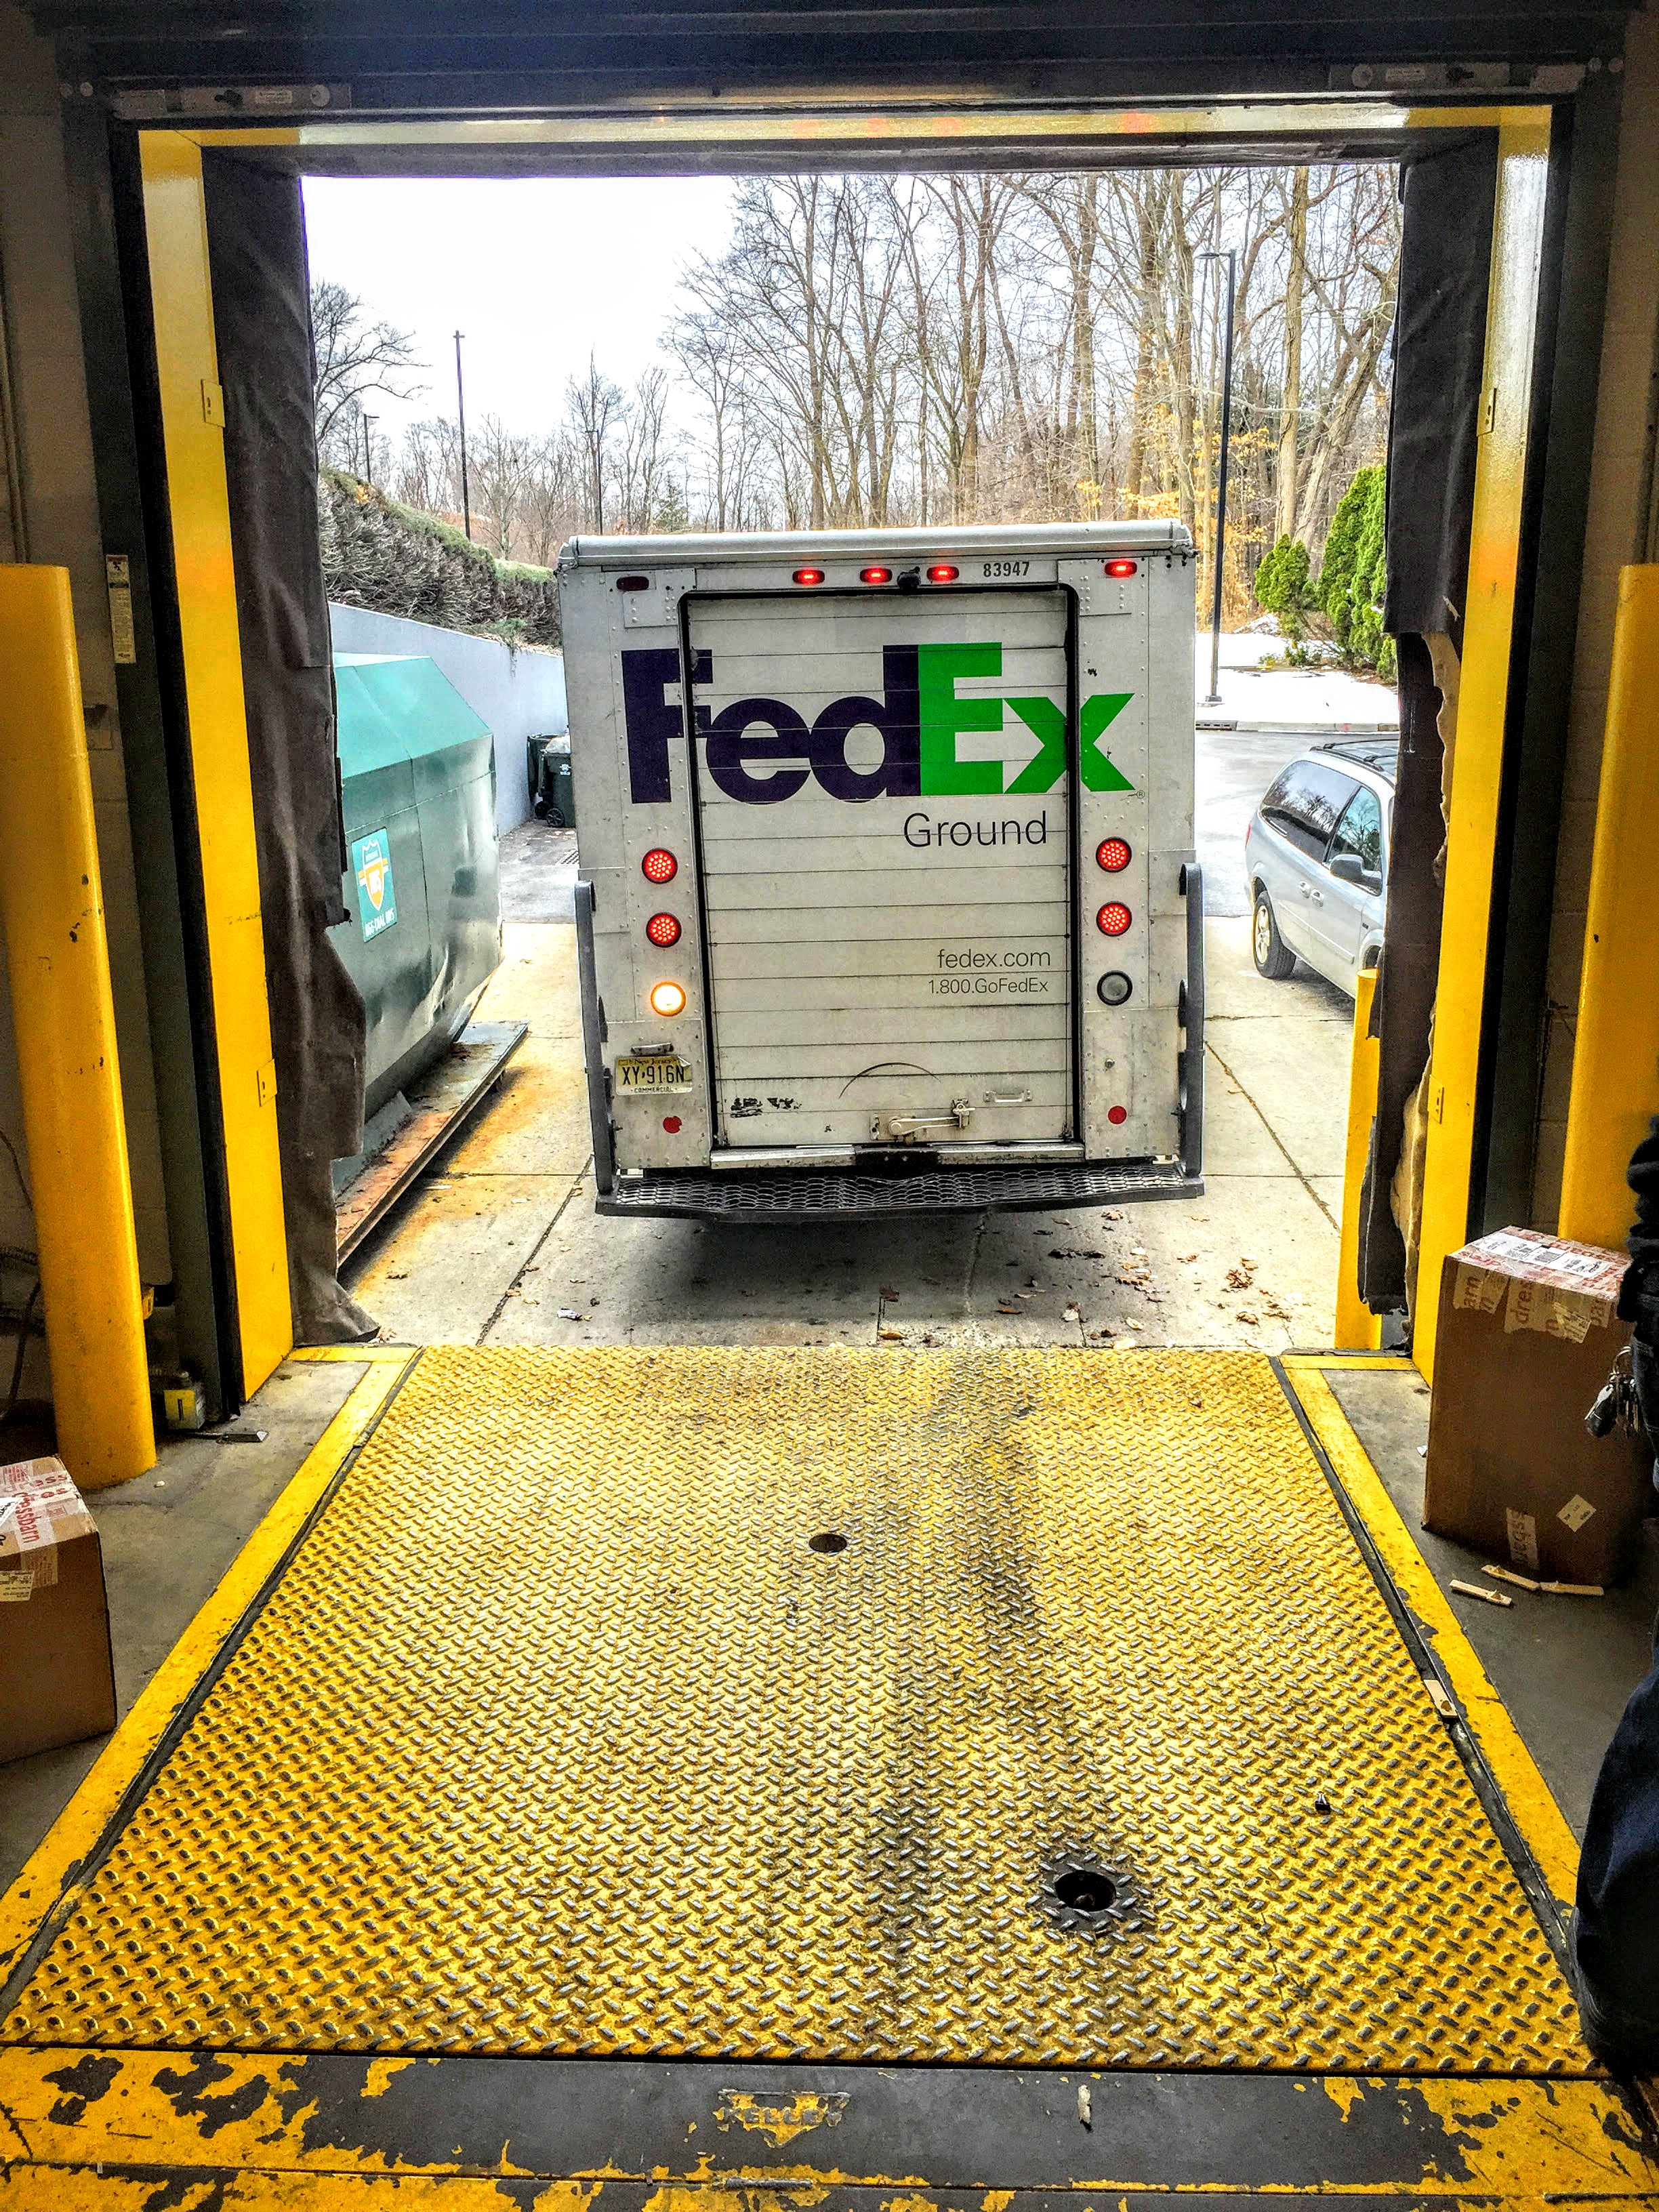 Our team at Loading Dock, Inc.is ready to repair, service, maintain and replace  your loading dock plates, dock doors, door pads, loading dock foam cushions, dock leveler lifts, truck restraints and dock rubber bumper pads in Somerset County, NJ.  We are fully stocked with loading dock parts for hydraulic and mechanical dock leveler repairs.